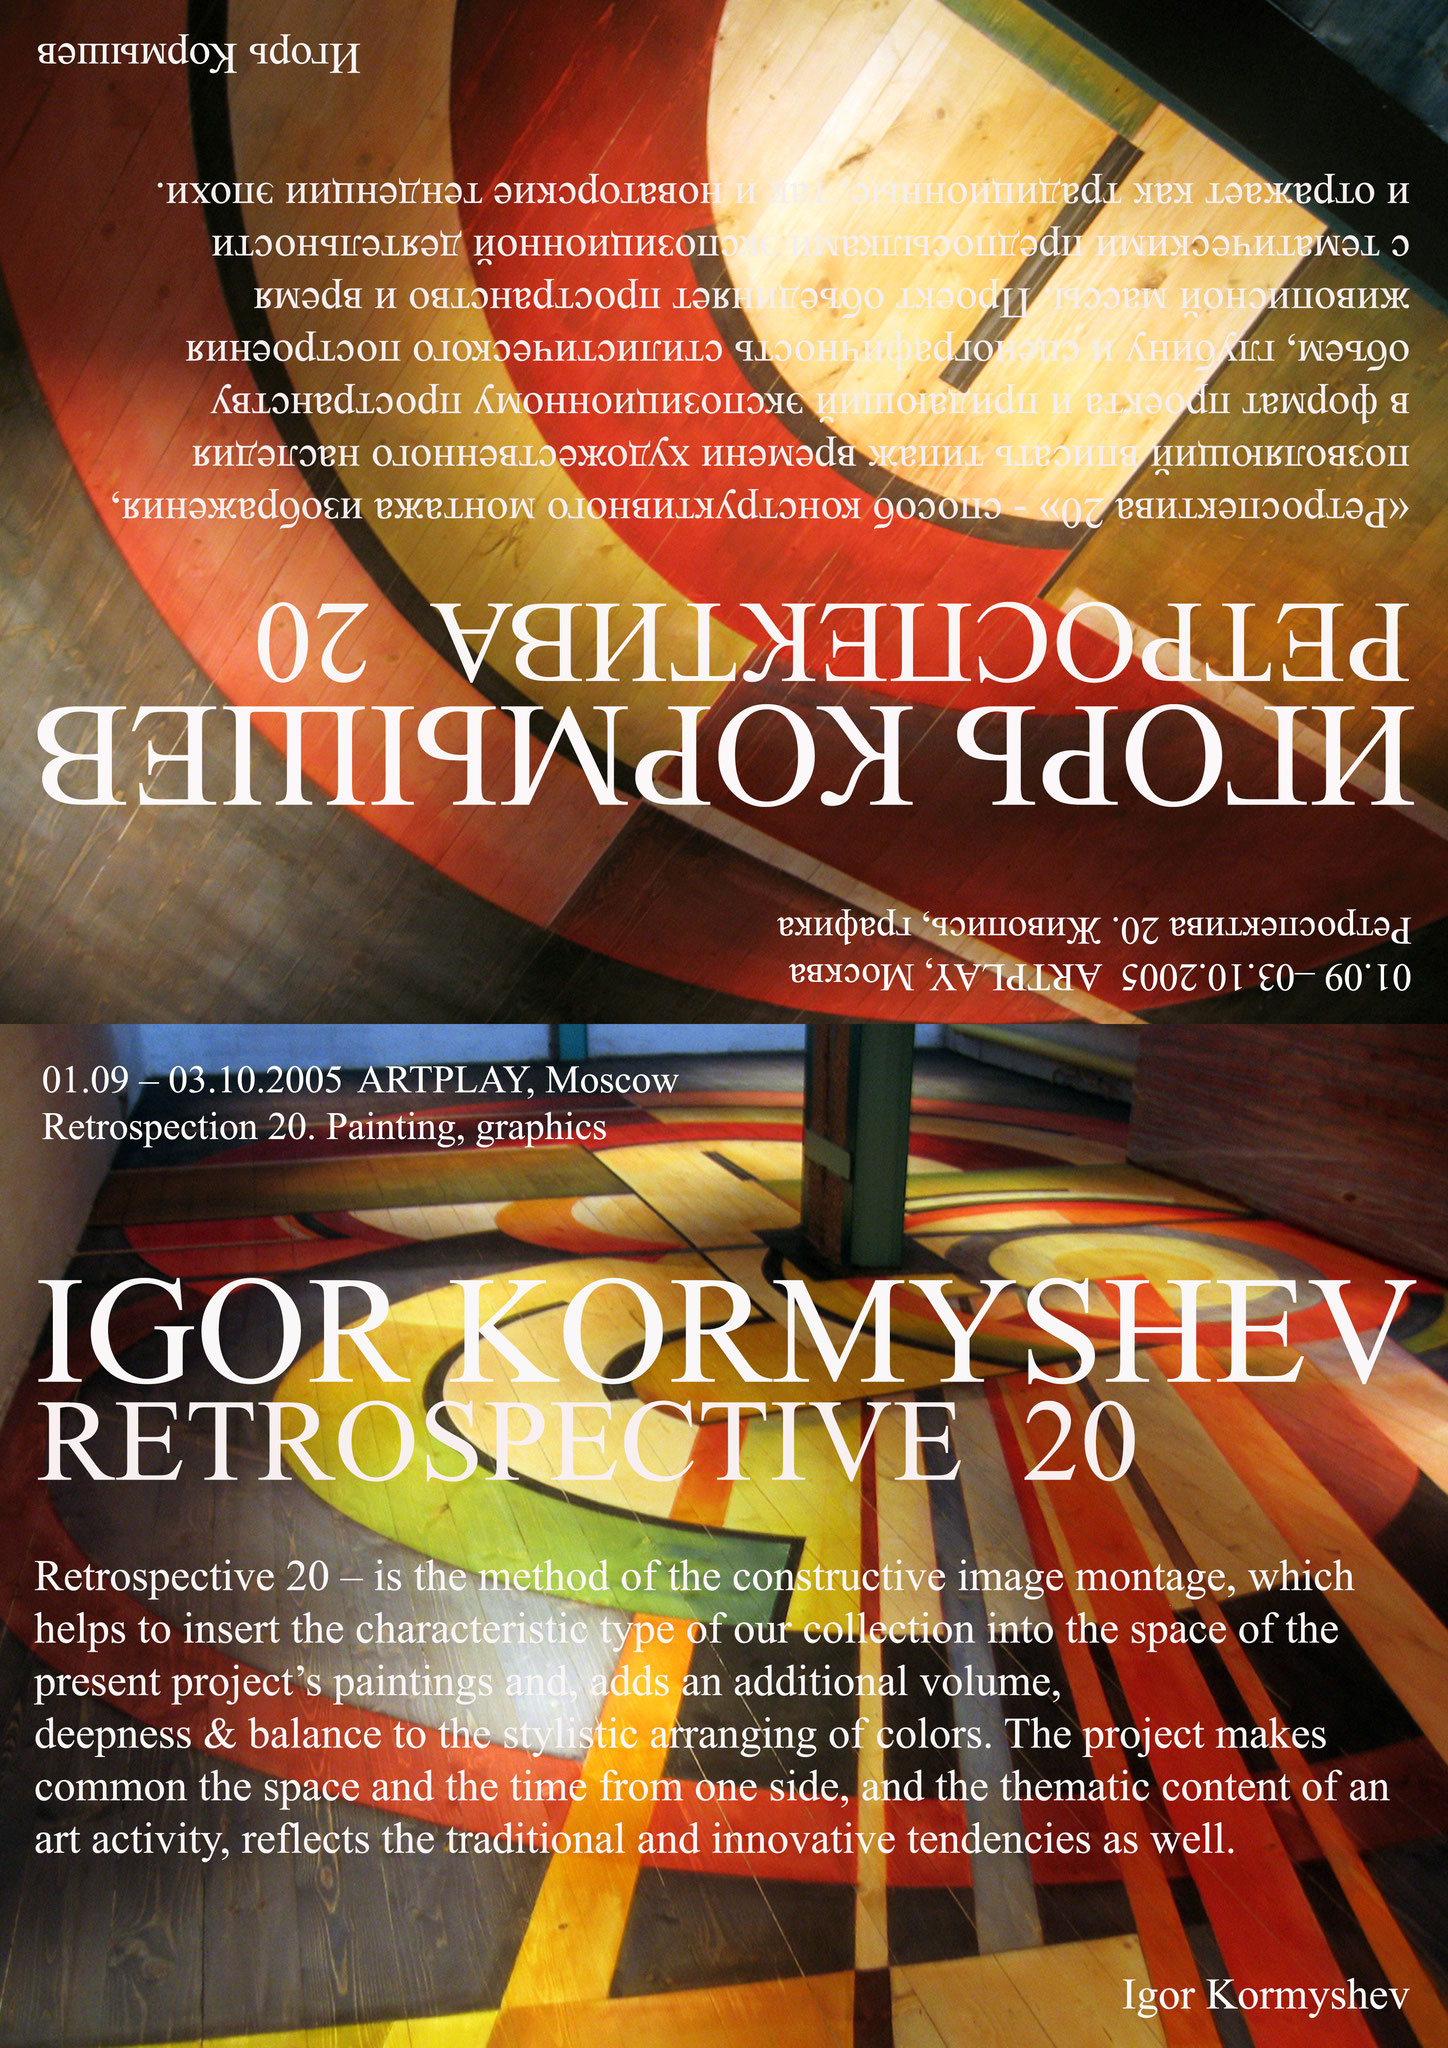 The booklet of the project 'Retrospective 20'